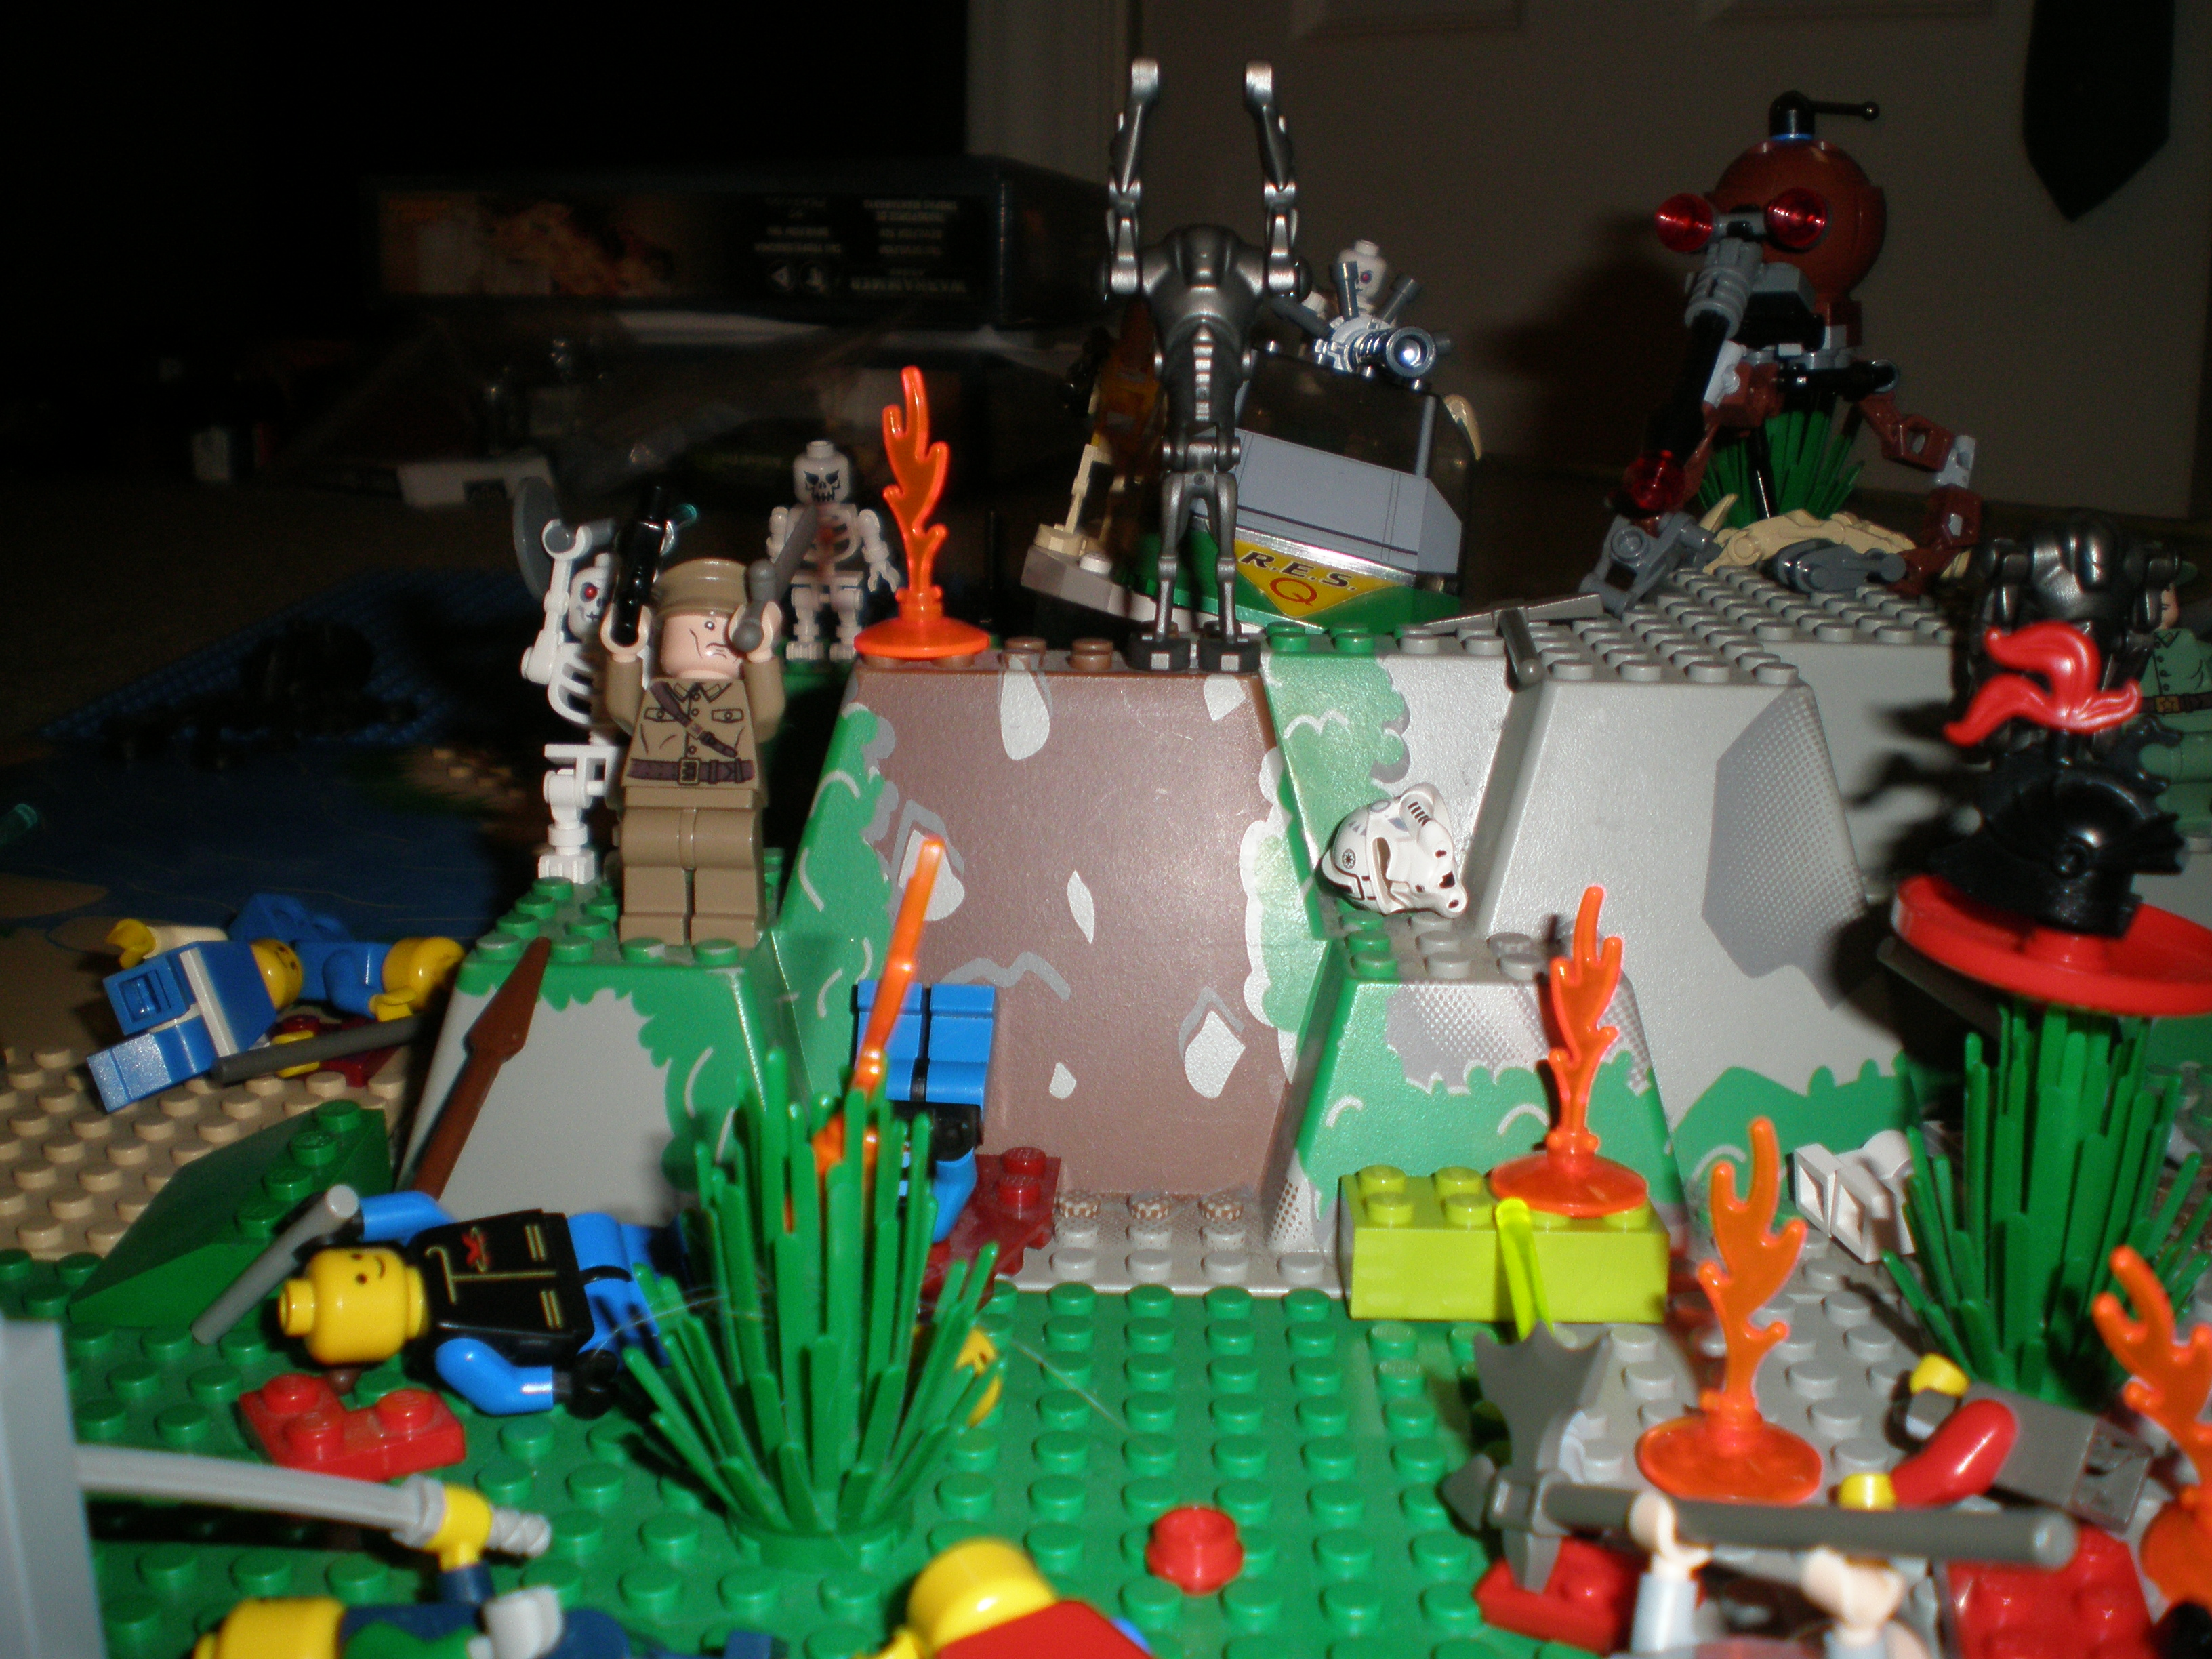 armagendon_lego_battle_016.jpg